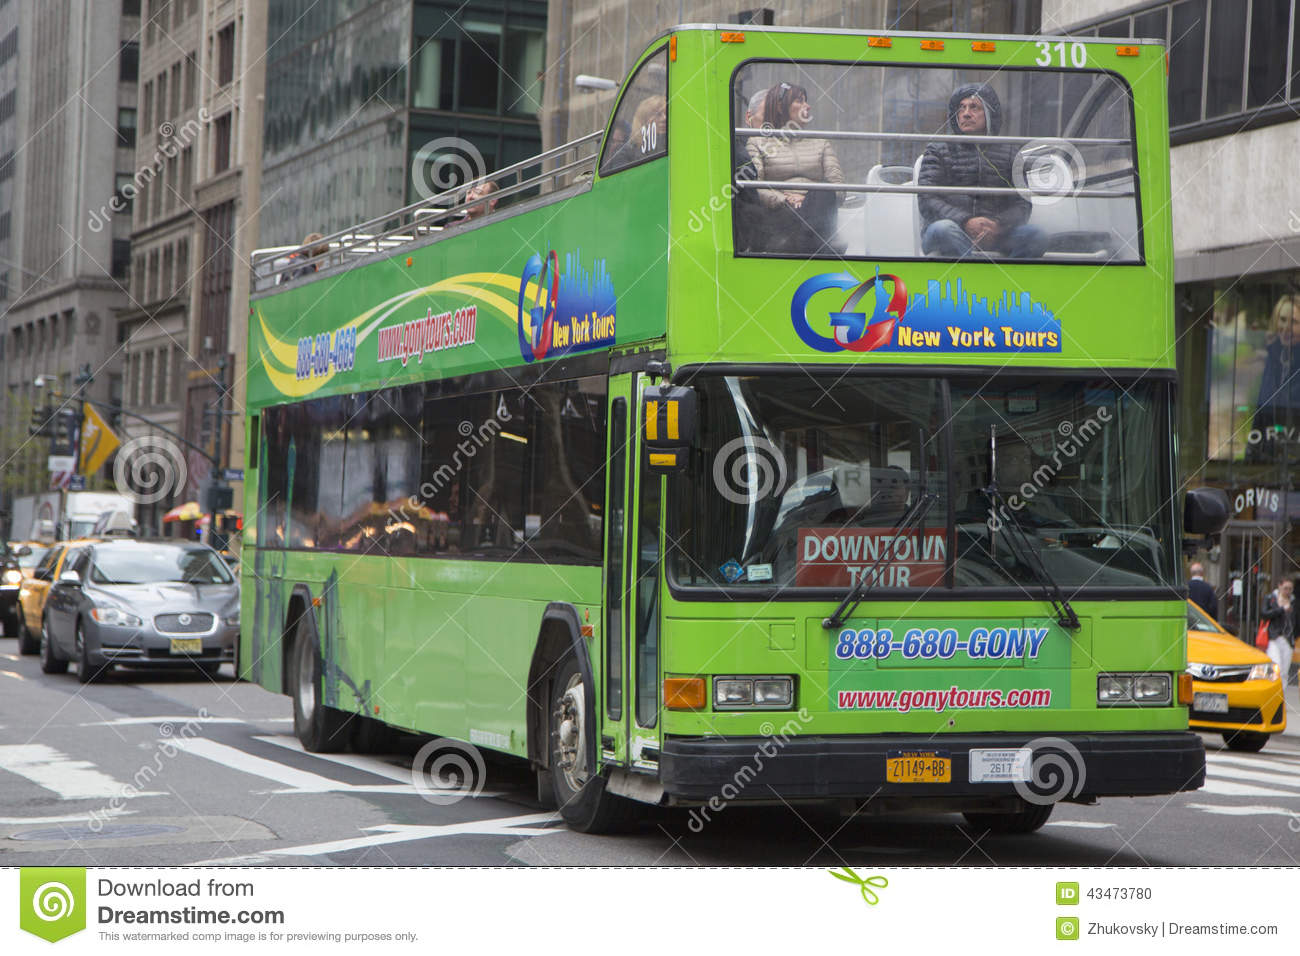 Gray Line New York offers the largest selection of NYC bus tours and New York sightseeing activities. Save big on bus tours, packages, cruises and more!